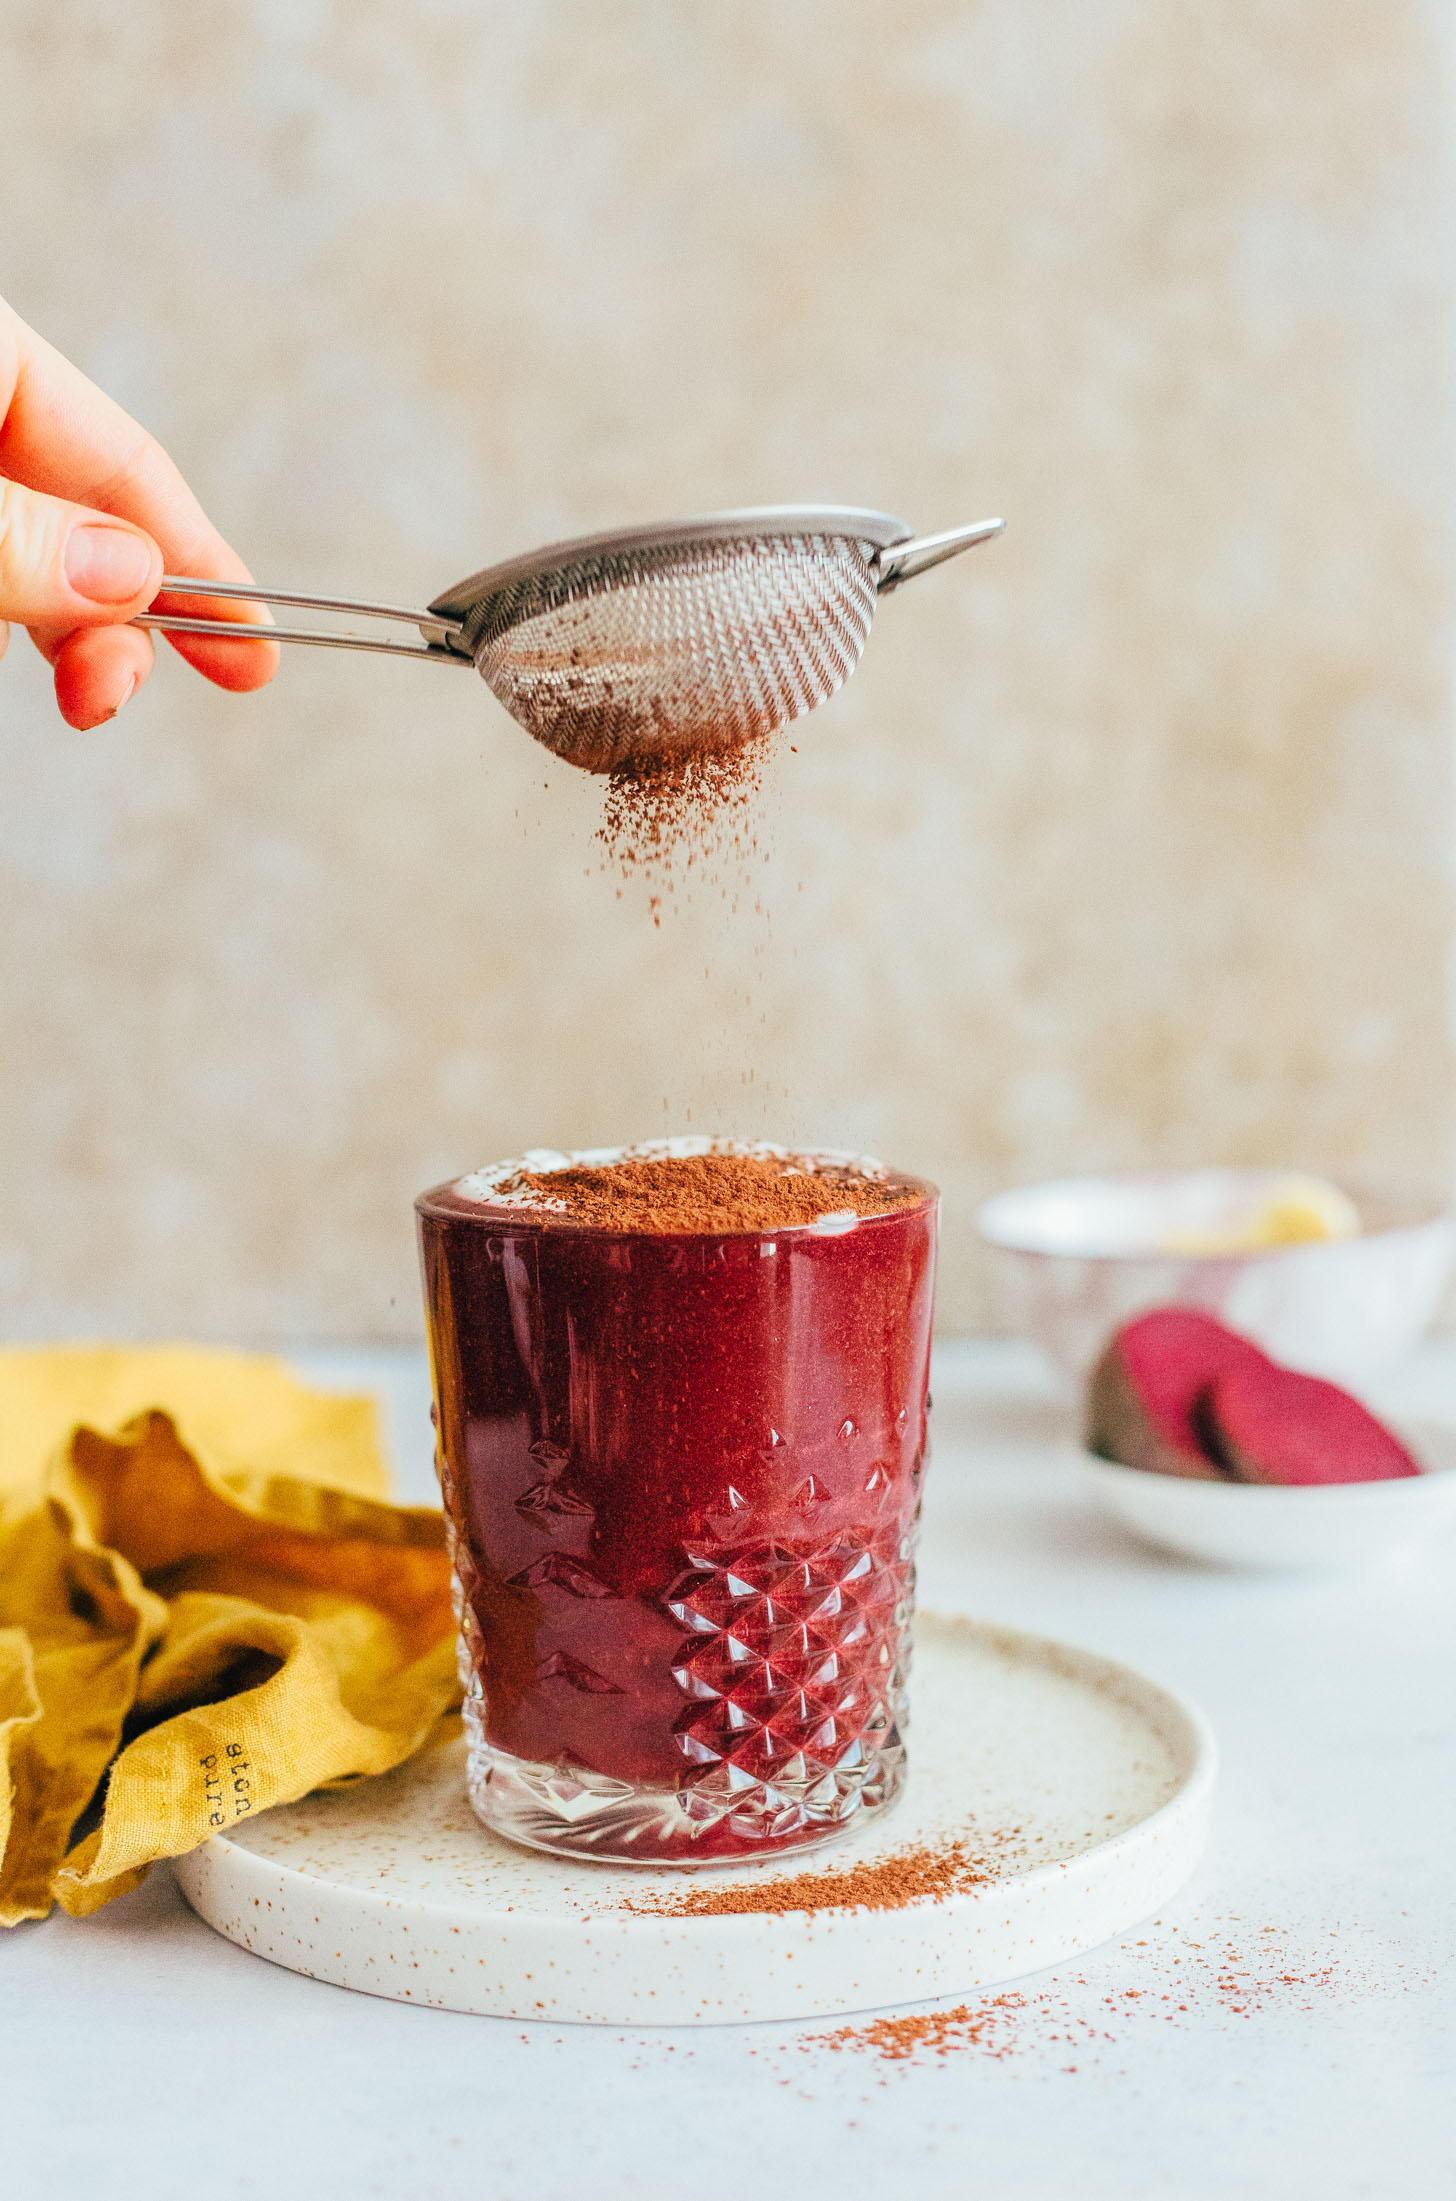 Sprinkling cacao powder over a glass filled with our beet smoothie recipe